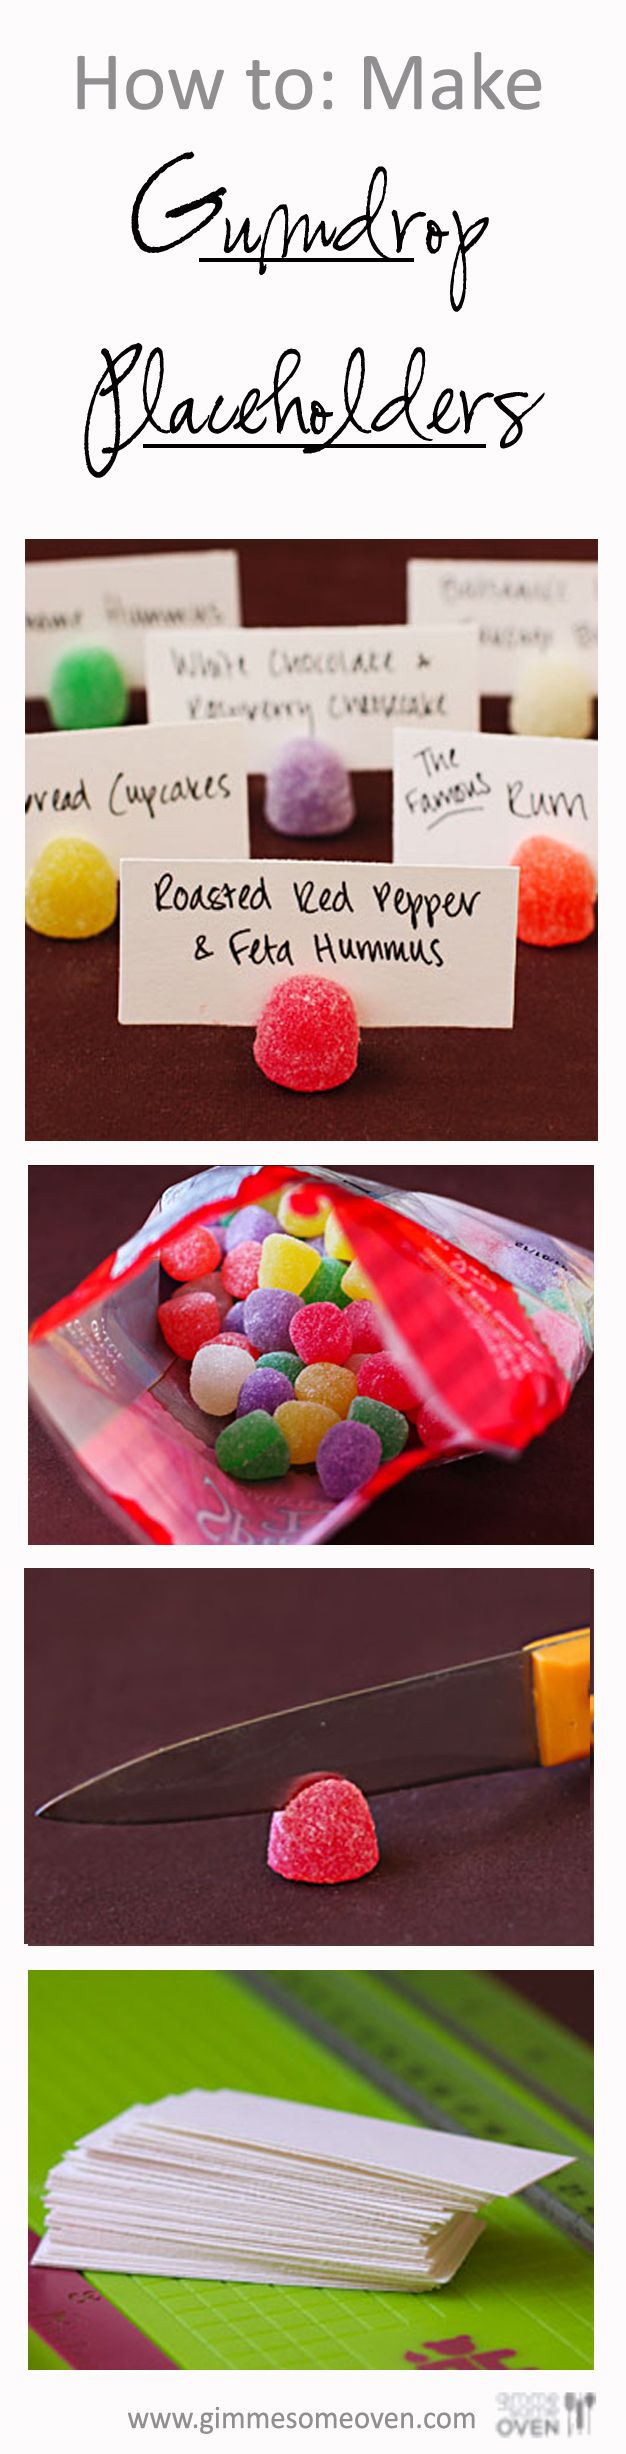 GREAT PARTY TRICK (gummy place holders) How To: Make Gumdrop Placeholders | gimmesomeoven.com